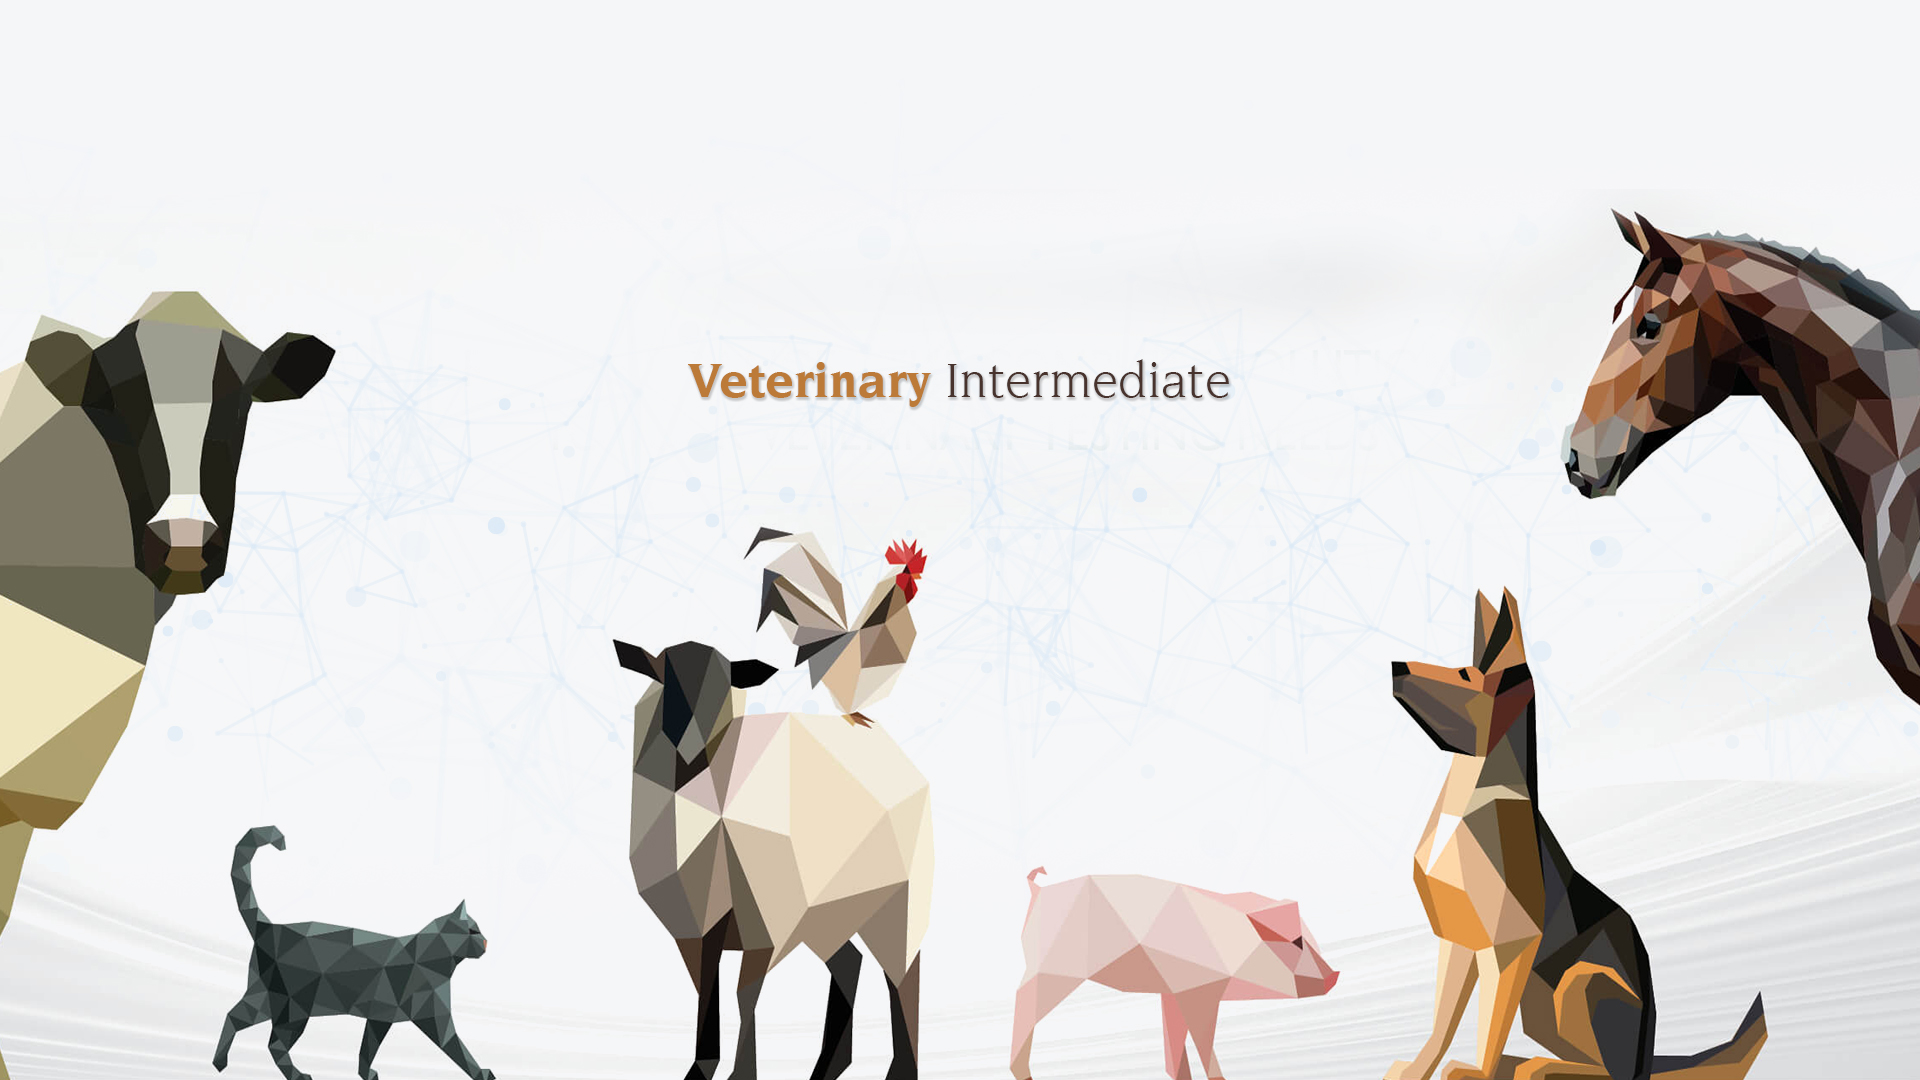 Veterinary-intermediate-Manufacturer